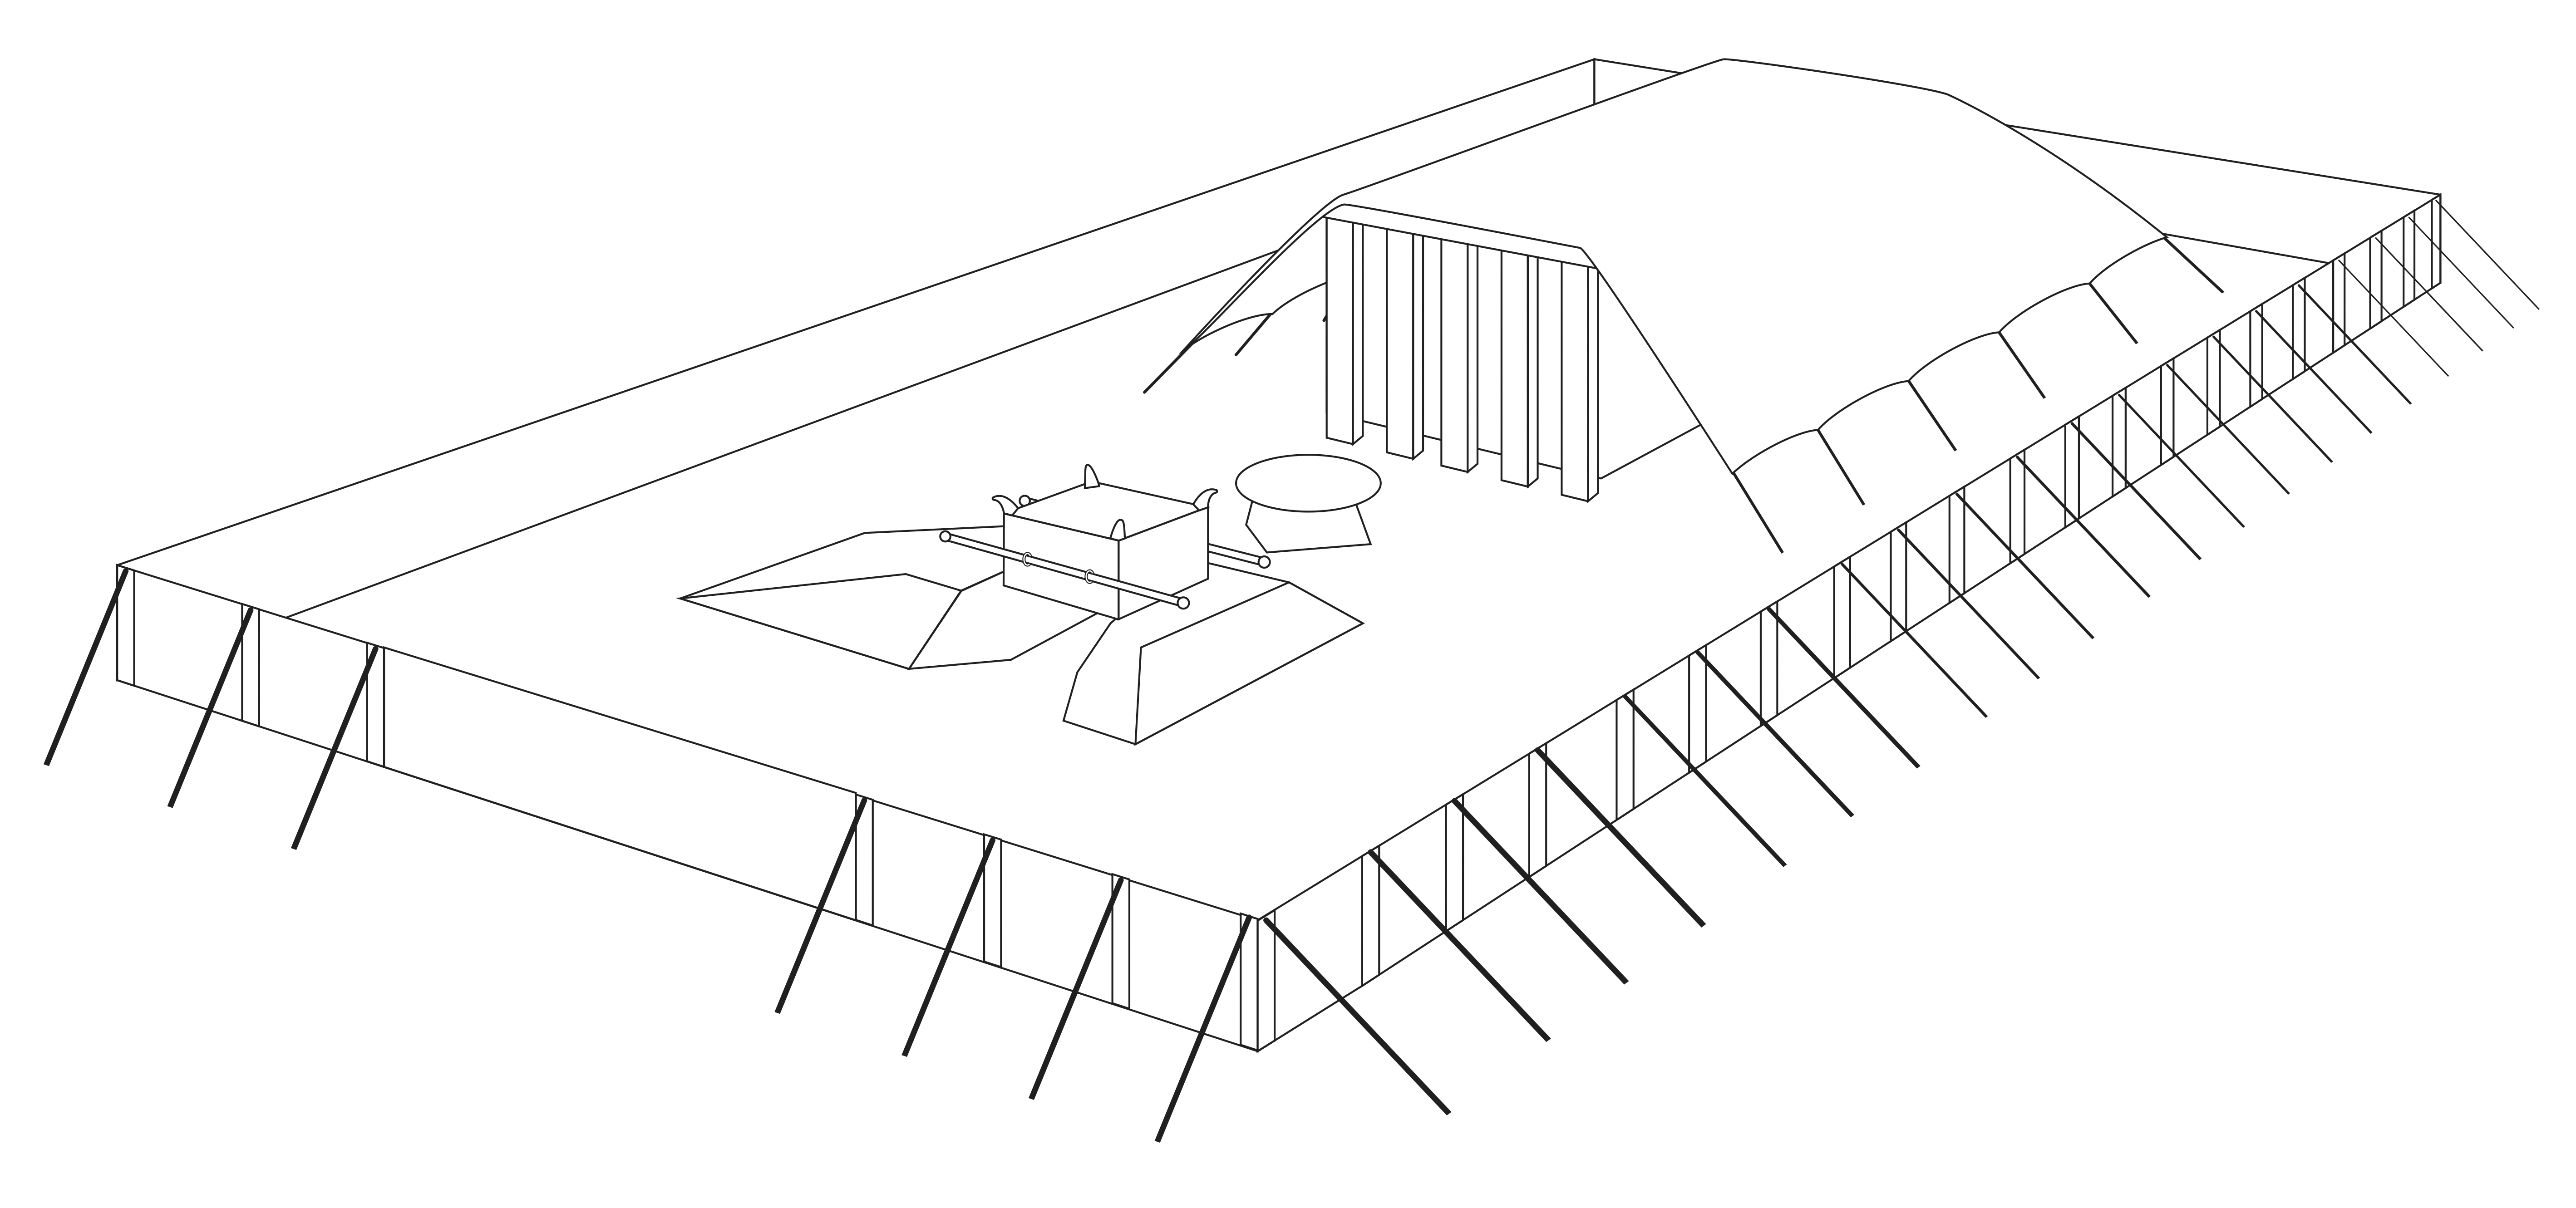 A line drawing by Jeremy Beck depicting the tabernacle in the wilderness.